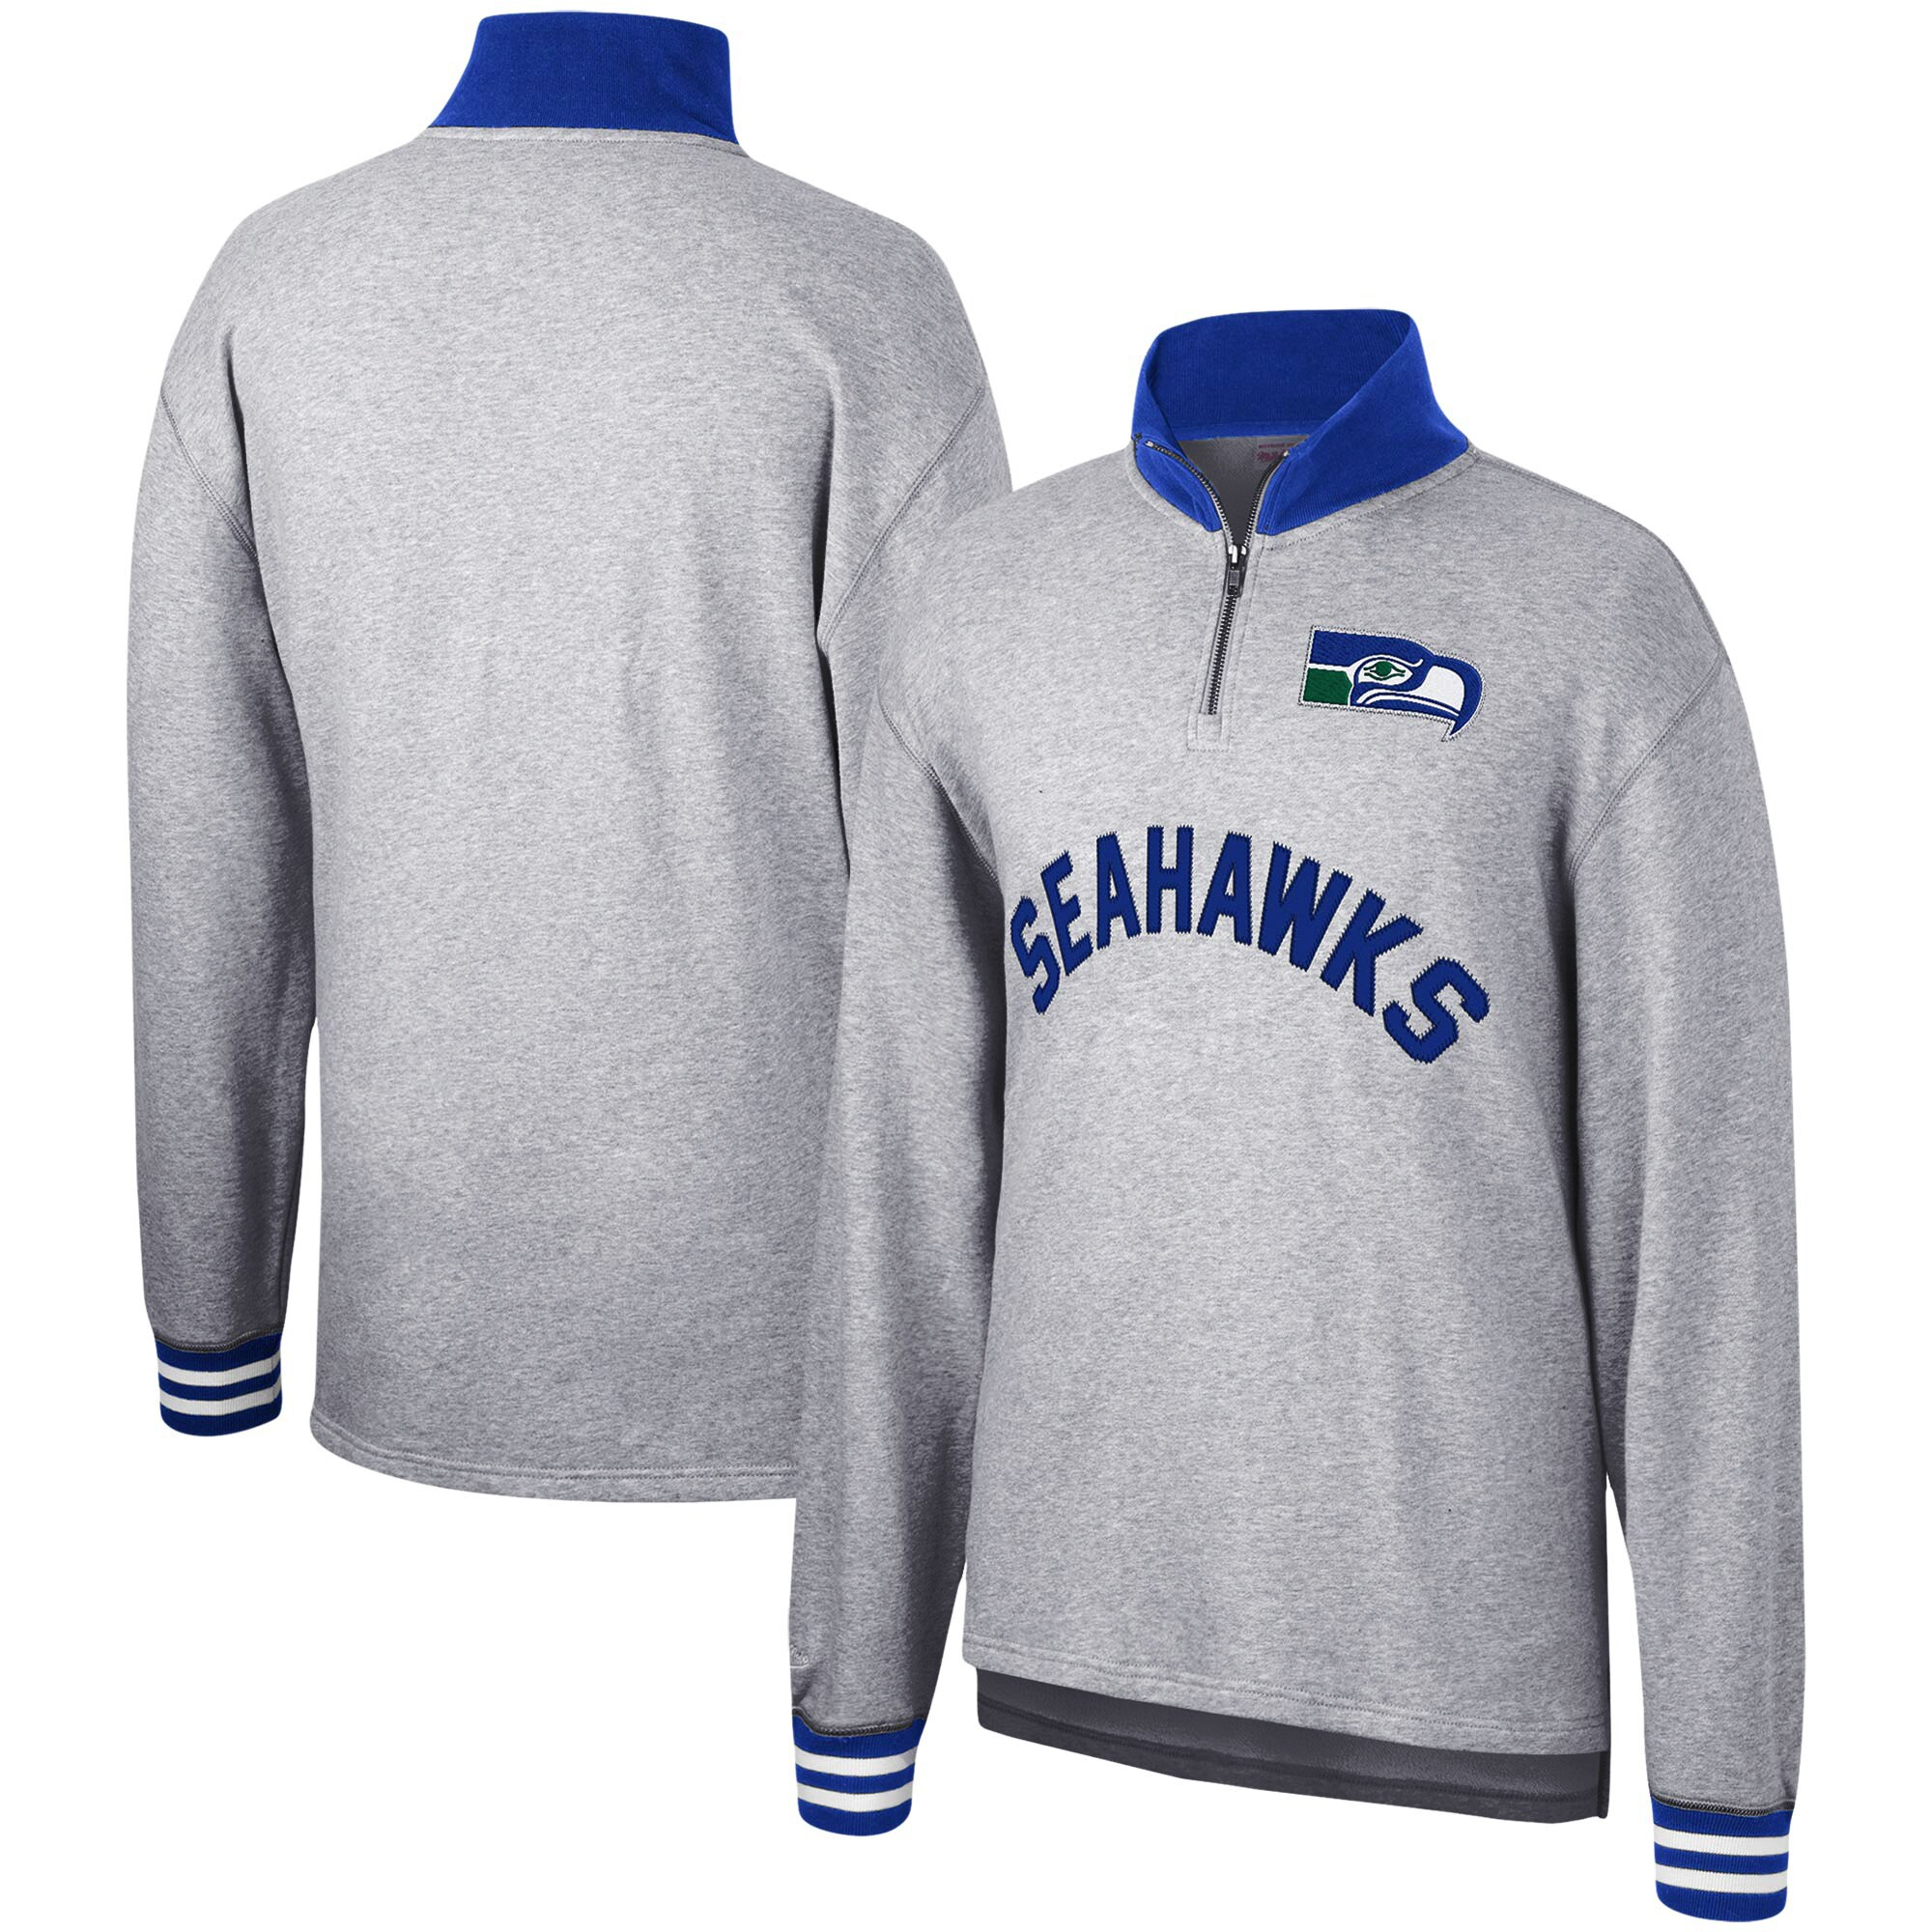 Seattle Seahawks Mitchell & Ness Sealed the Victory Quarter-Zip Pullover Jacket - Heathered Gray